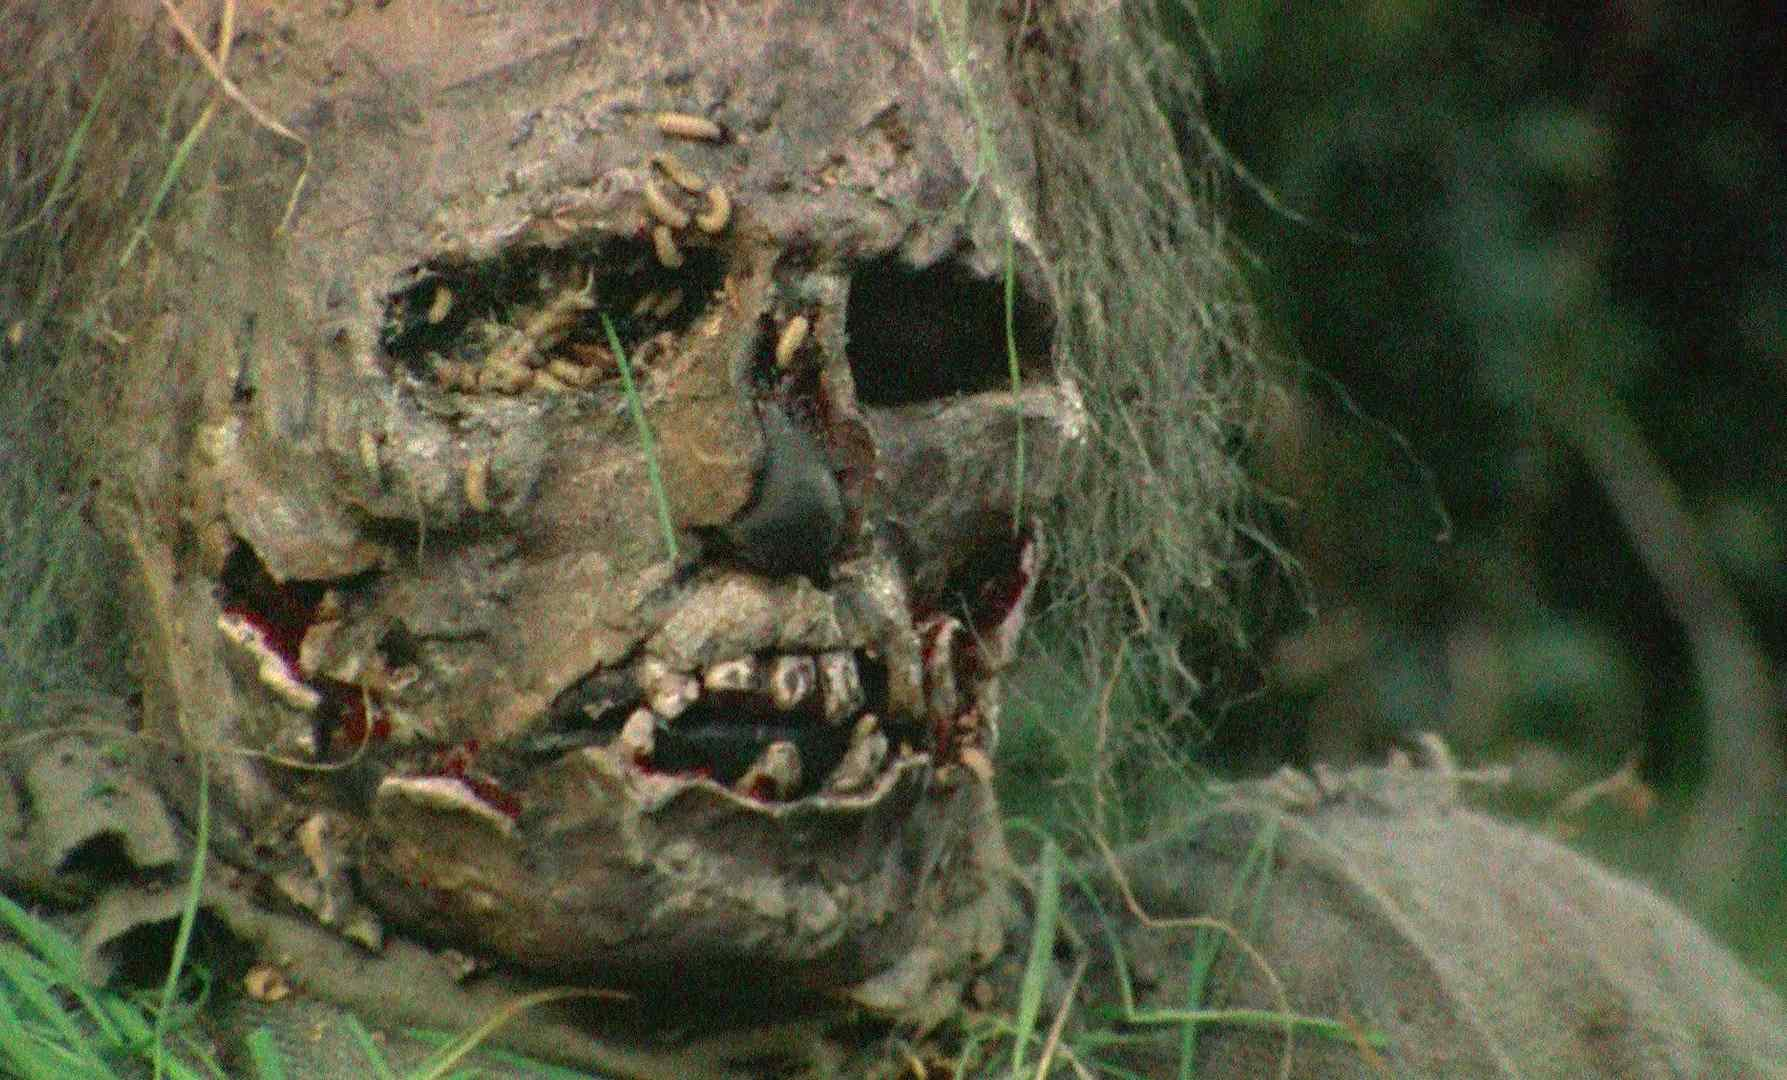 A skeleton from the Andrea Bianchi zombie horror film Burial Ground: Nights of Terror.